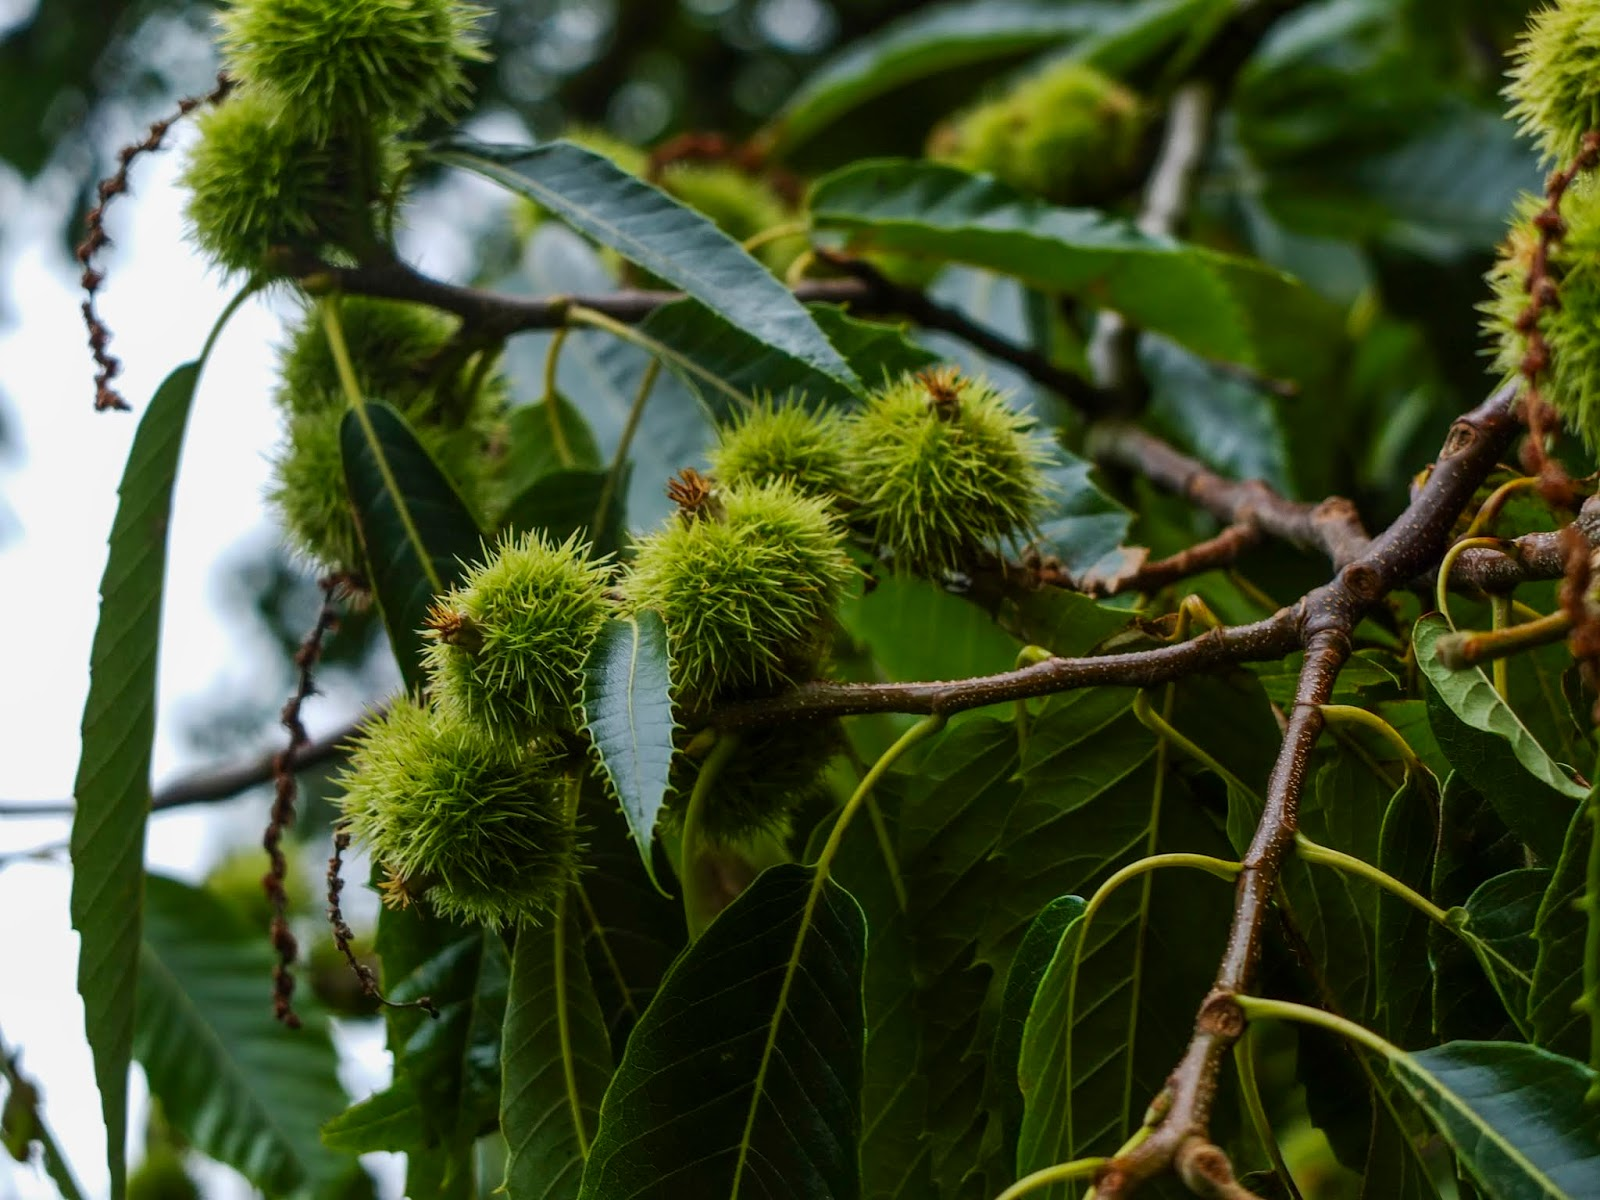 Green chestnut burrs growing on branches.